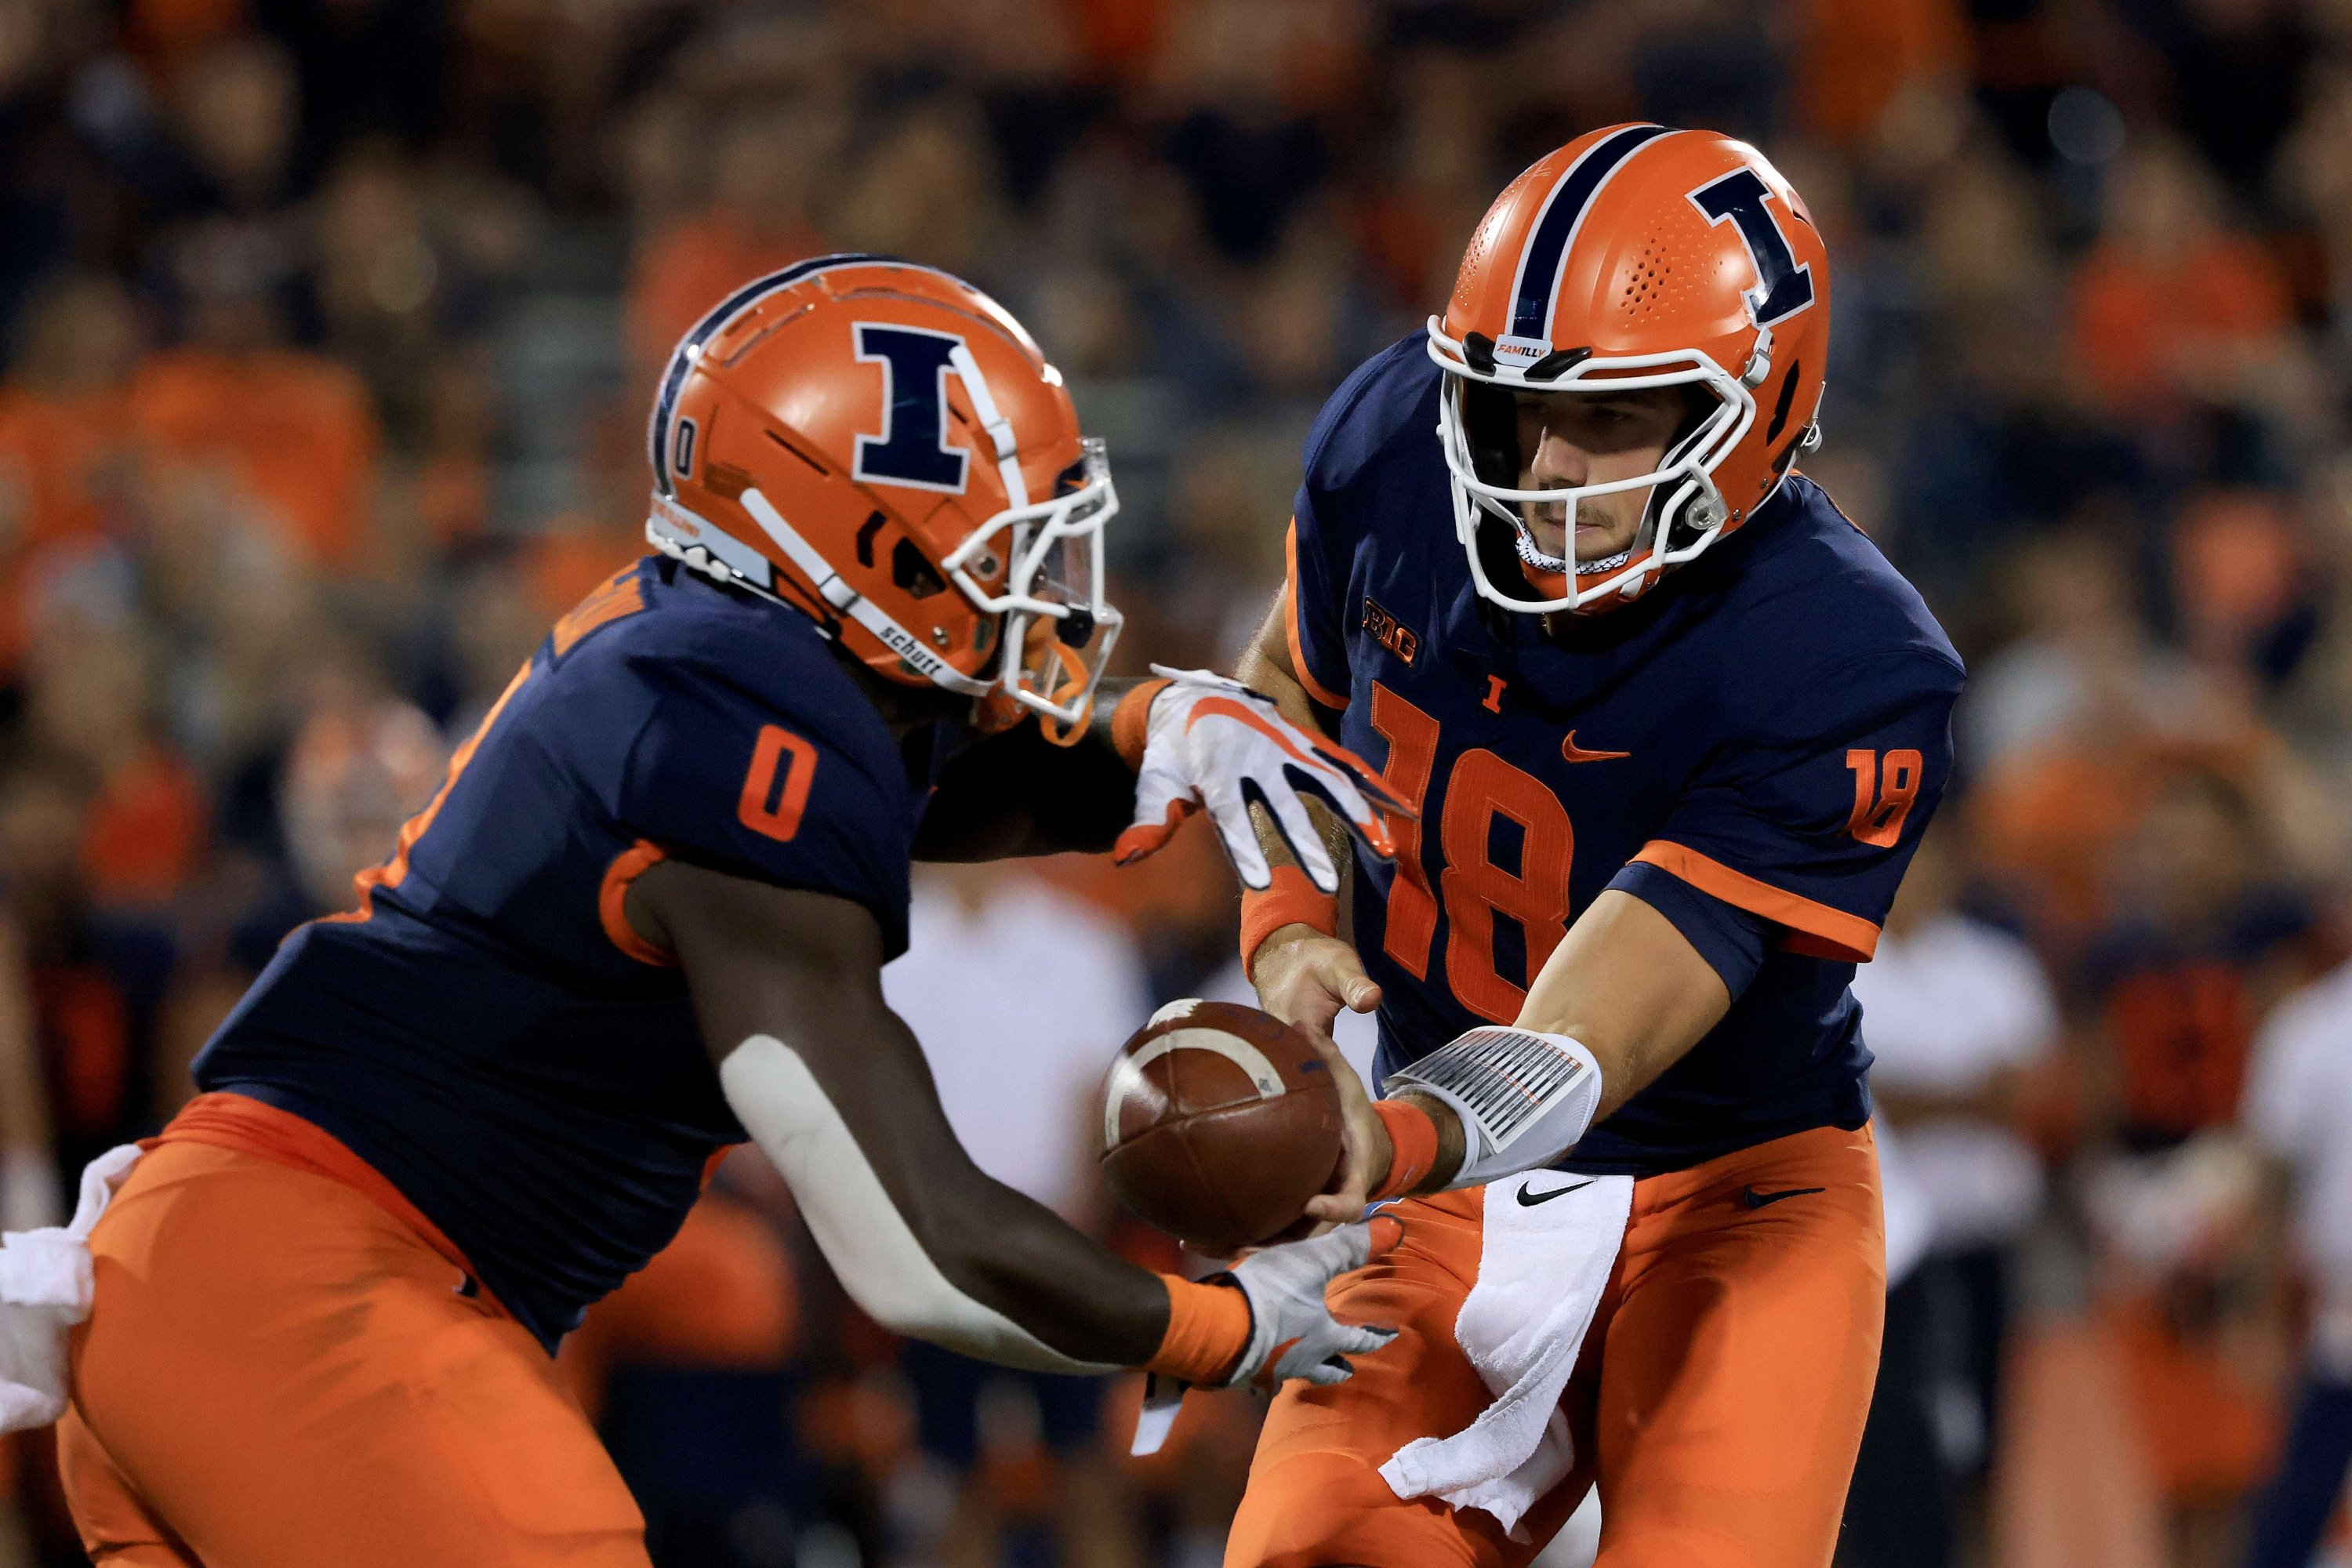 Brandon Peters (18) hands the ball off to Josh McCray (0) of the Illinois Fighting Illini during the first quarter in the game against the Maryland Terrapins at Memorial Stadium, Champaign, Illinois, U.S., Sept. 17, 2021. (AFP Photo)